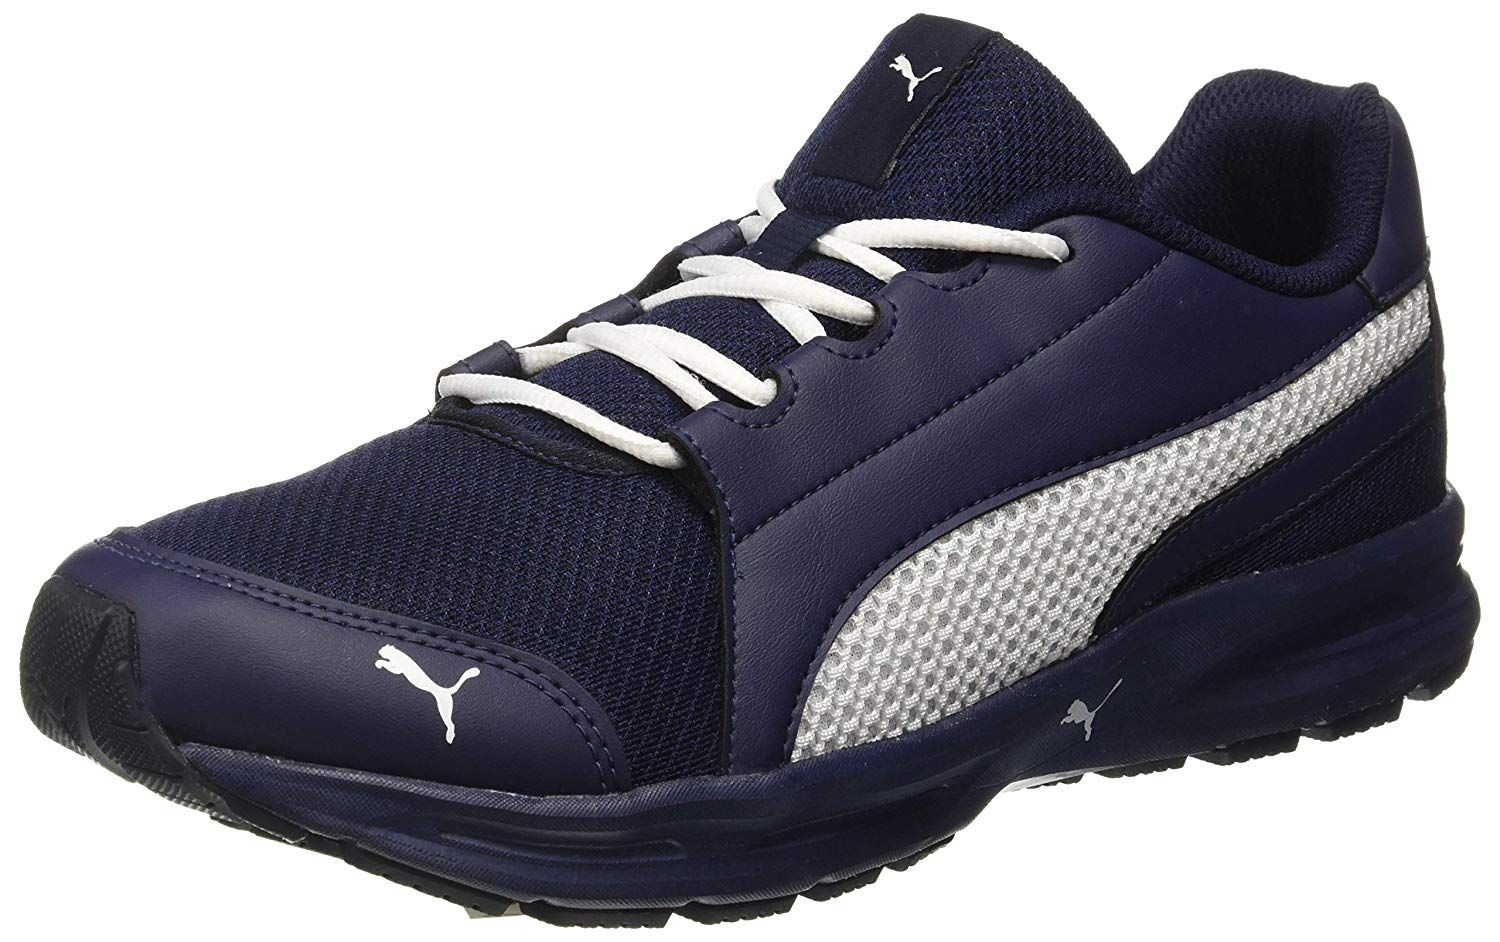 Puma Men S Running Shoes Buy Online At Low Prices In India